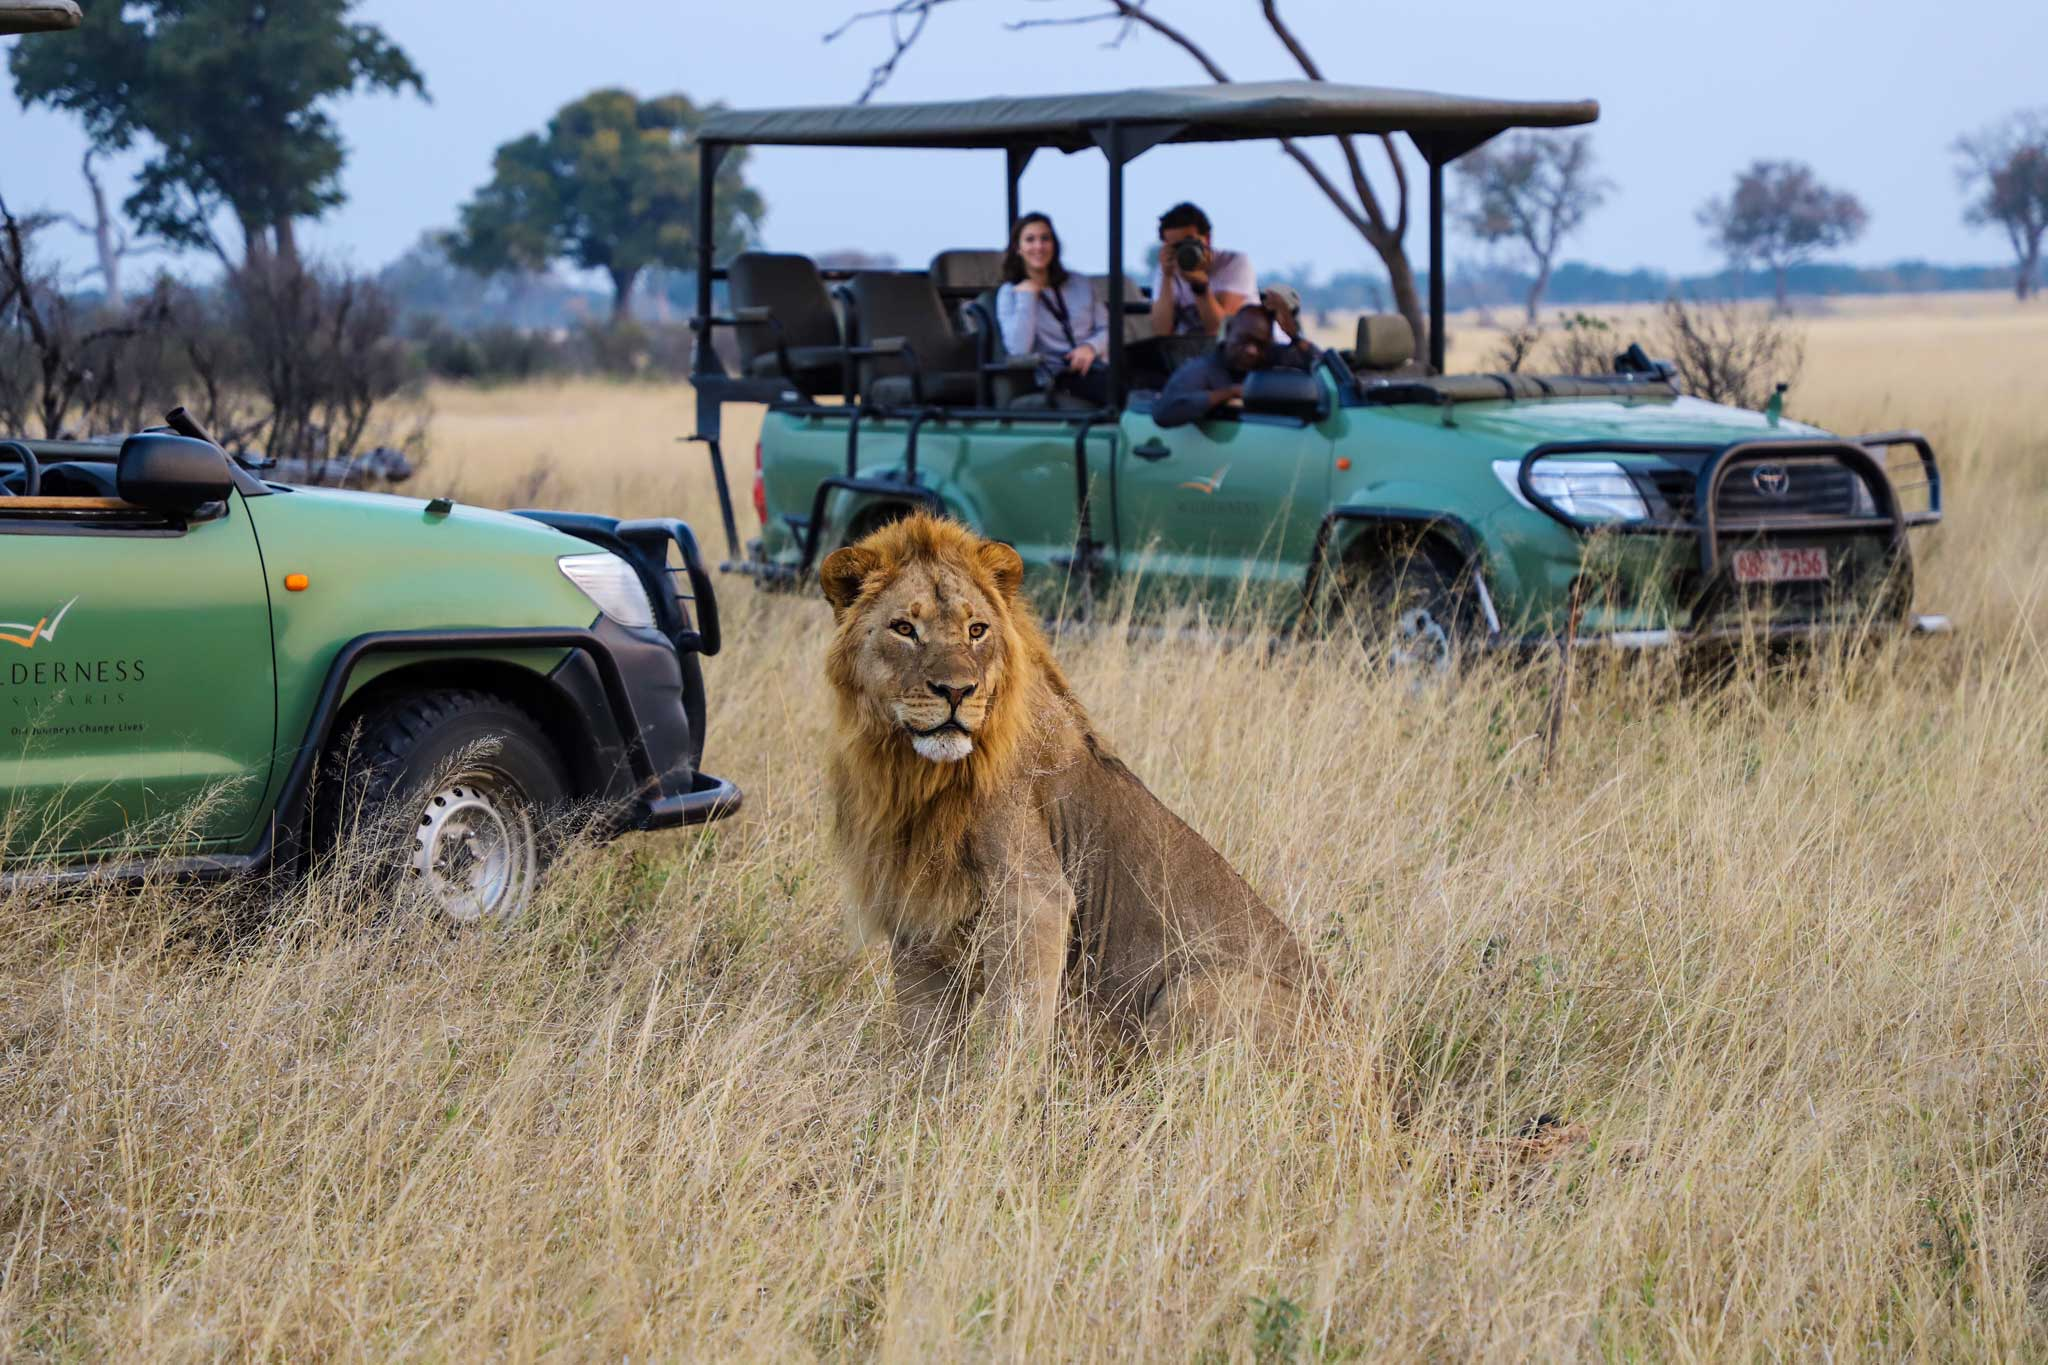 Walking Safaris, Mountain Bike Tours, and Sustainable Lodges: The Modern Adventurer's Guide to Africa